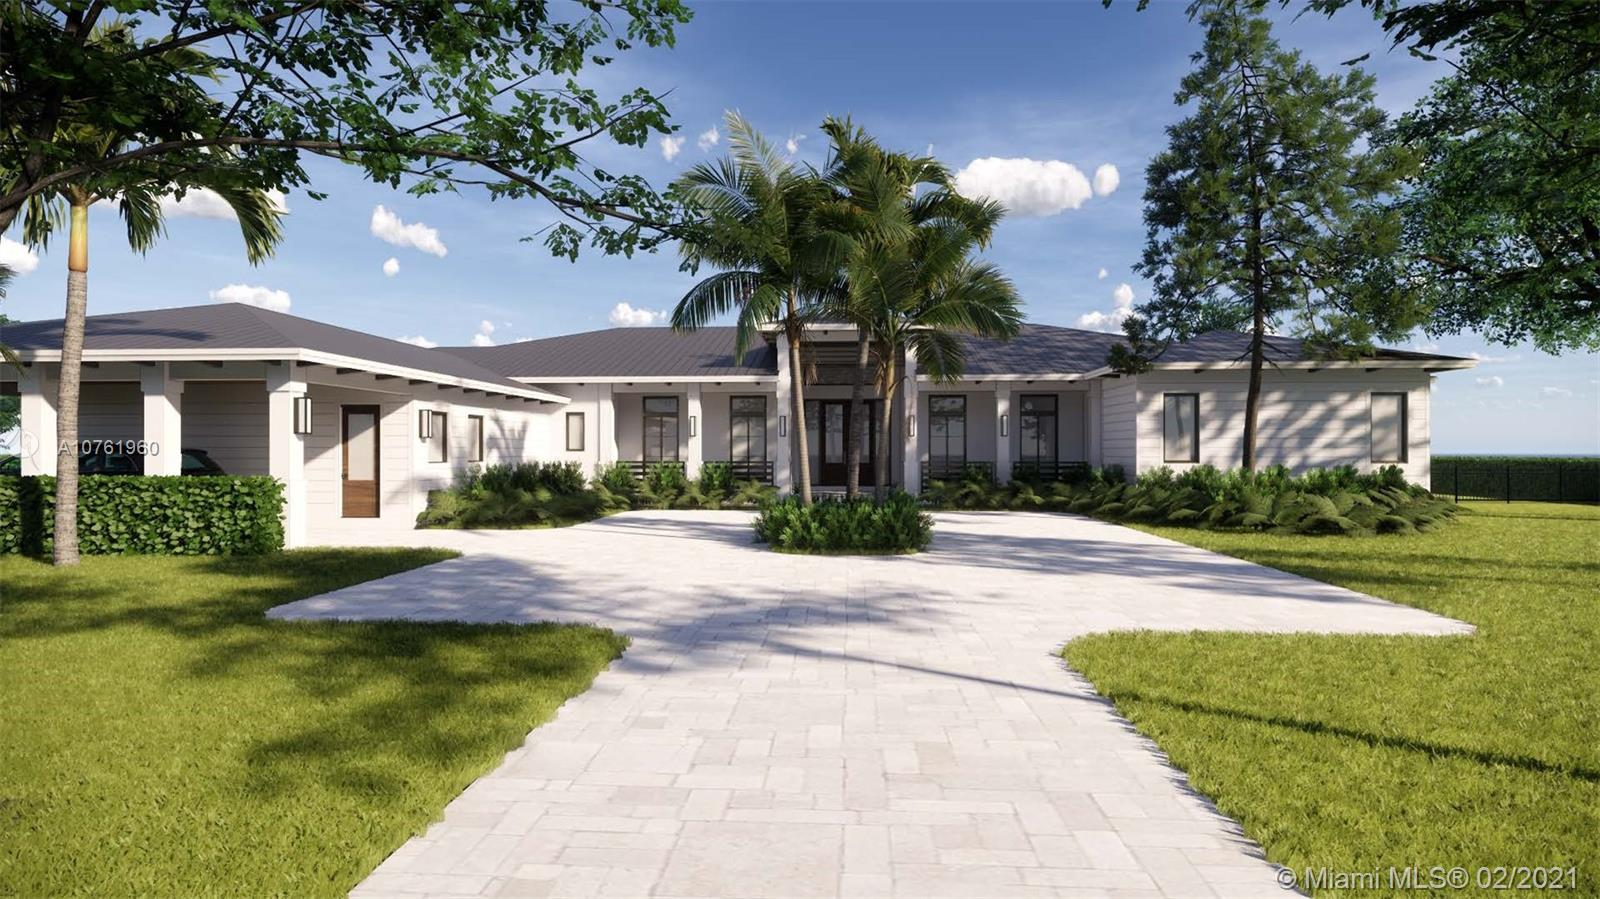 6297 SW 102nd St, Kendall, Florida